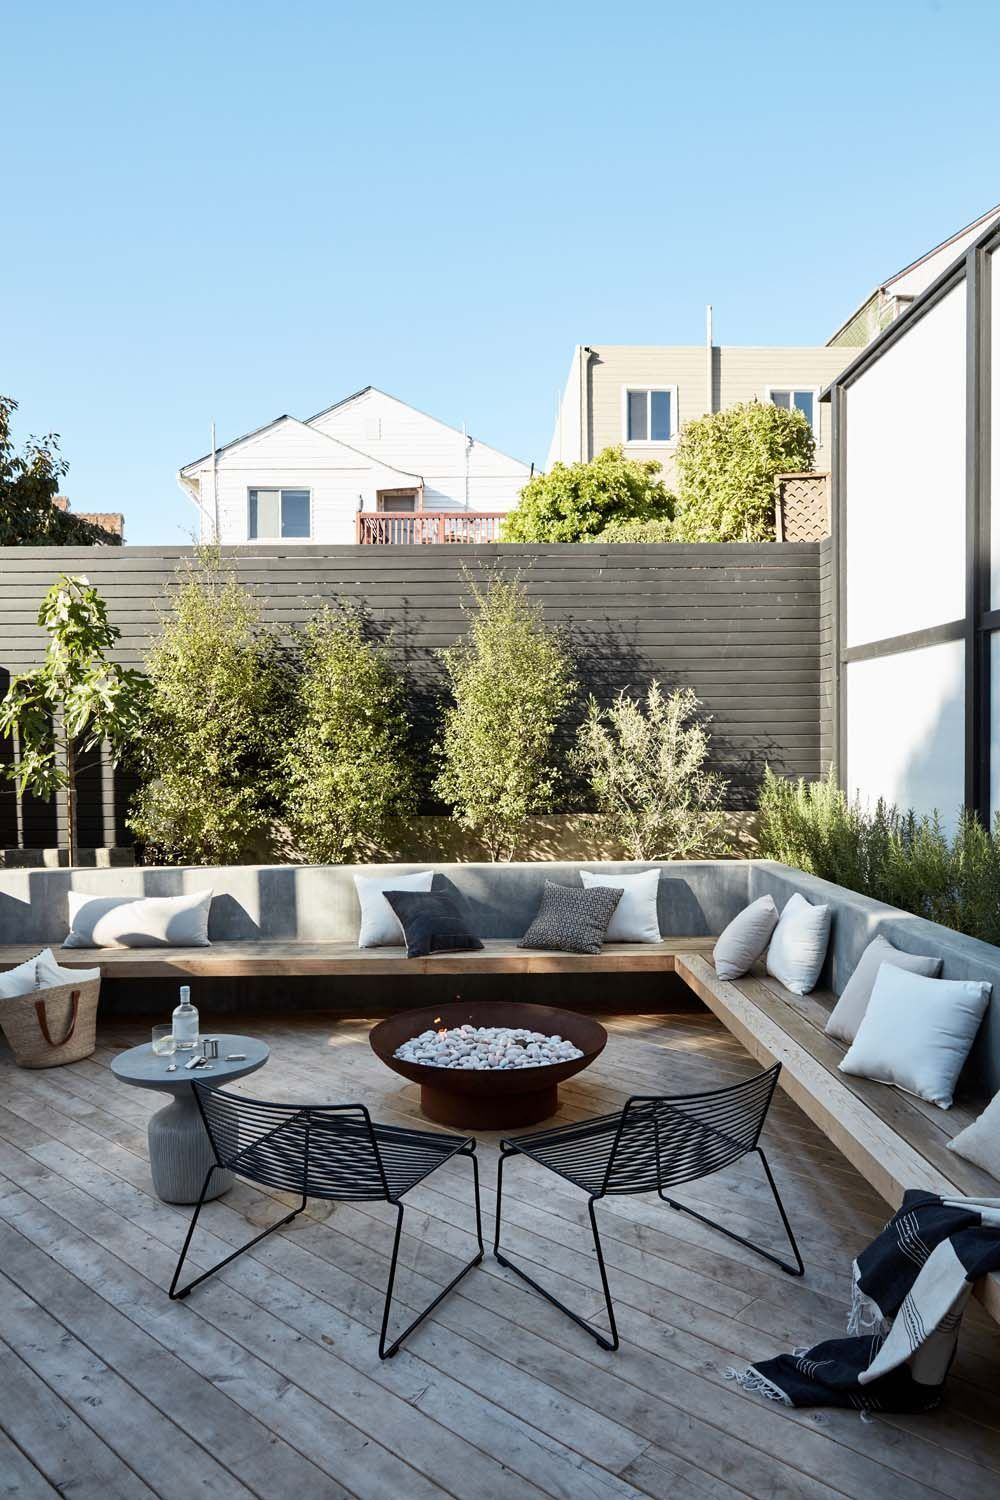 How We Designed Our Dream Yard – Apartment34